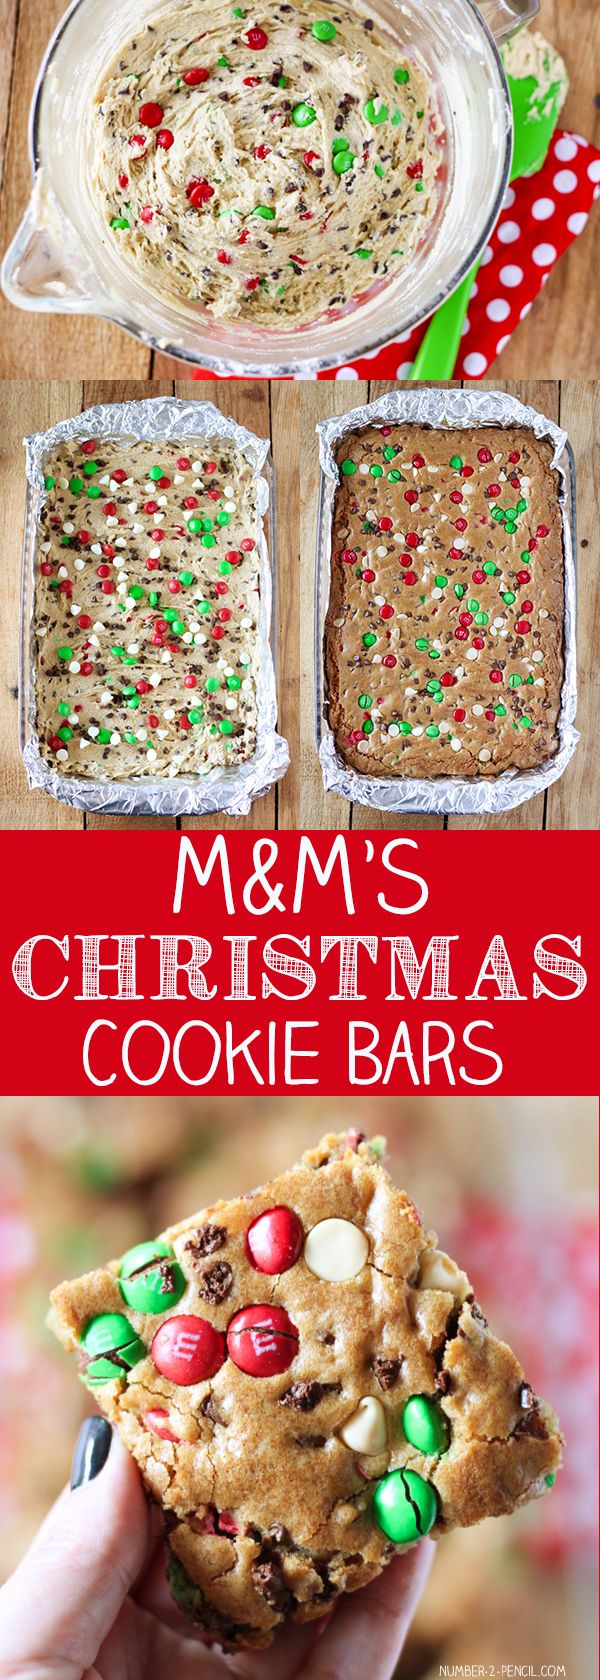 Best 25+ Christmas treats ideas on Pinterest | Holiday desserts ...